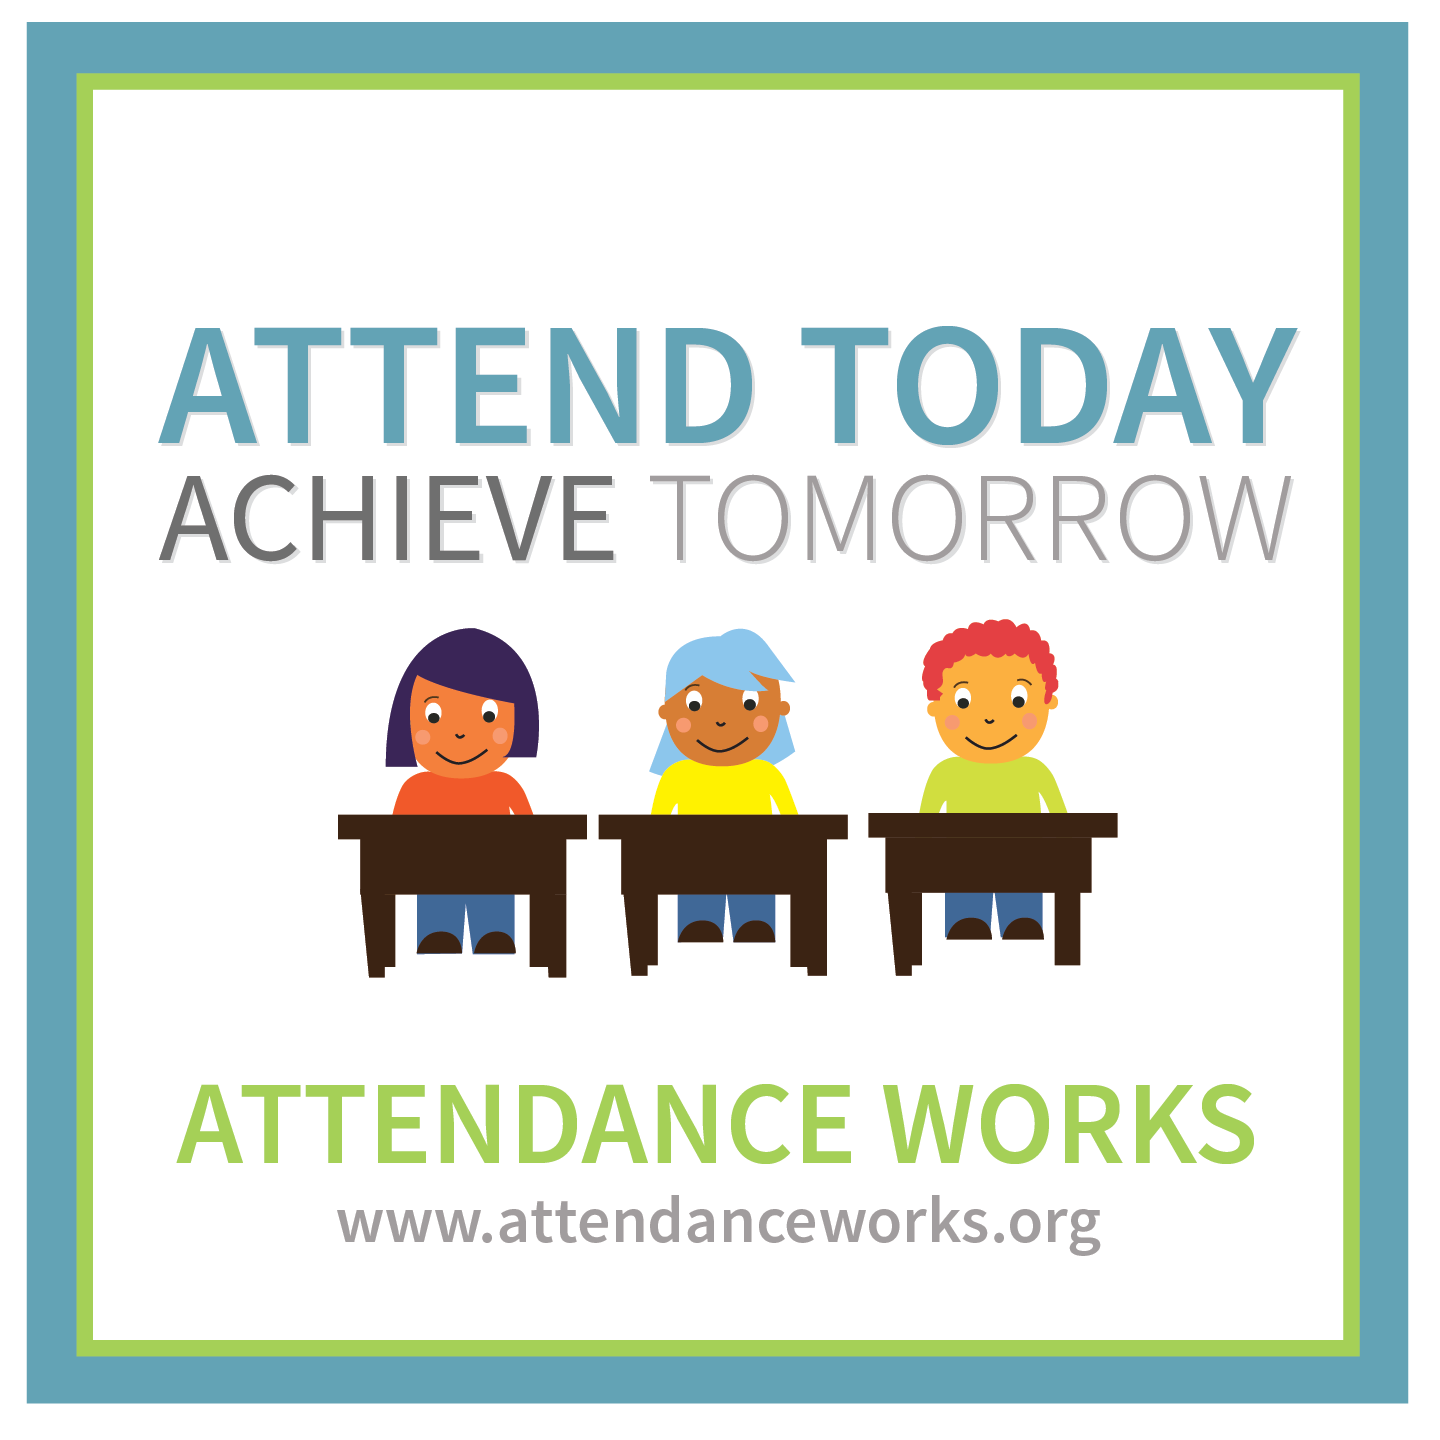 http://awareness.attendanceworks.org/wp-content/uploads/AttendAchieve_Decal.png